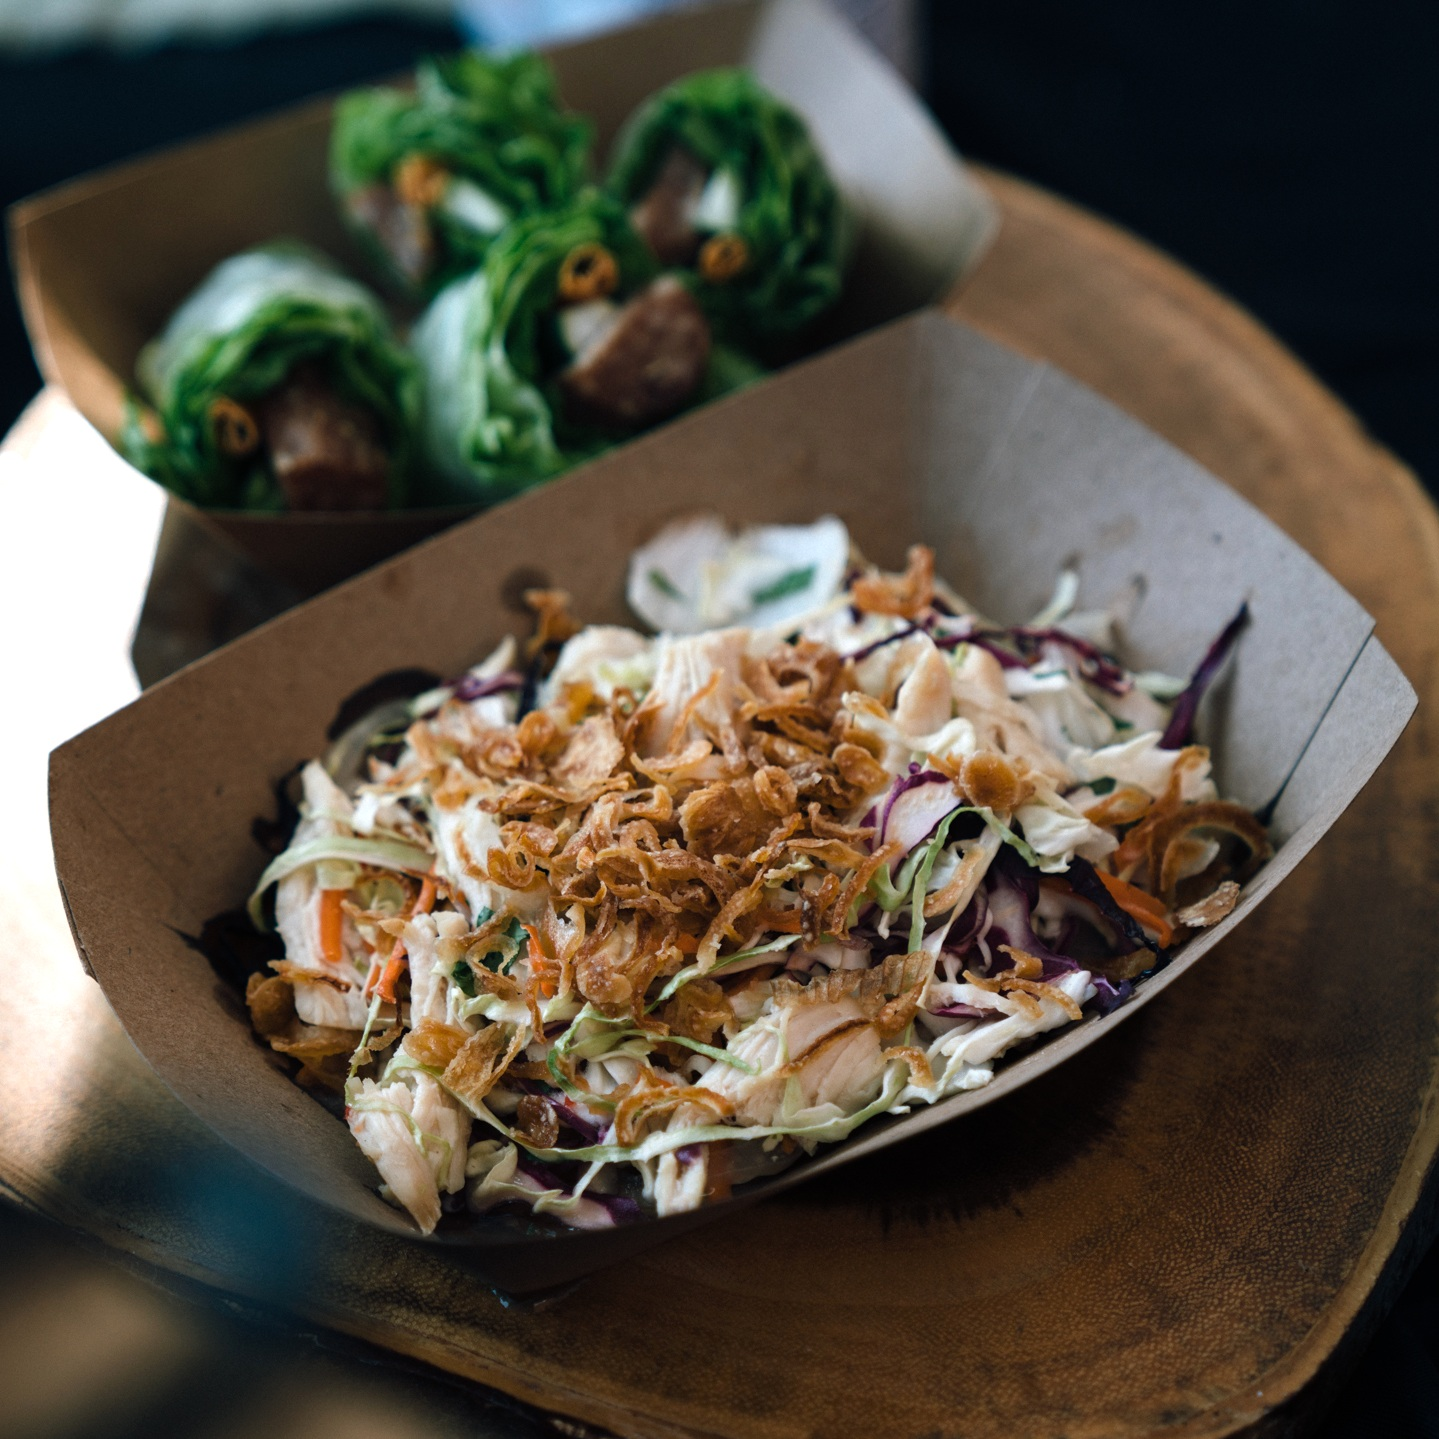 Pham to Table's GỎI GA (Chicken cabbage salad). Photo by Janice Chung for HFNM 2019.